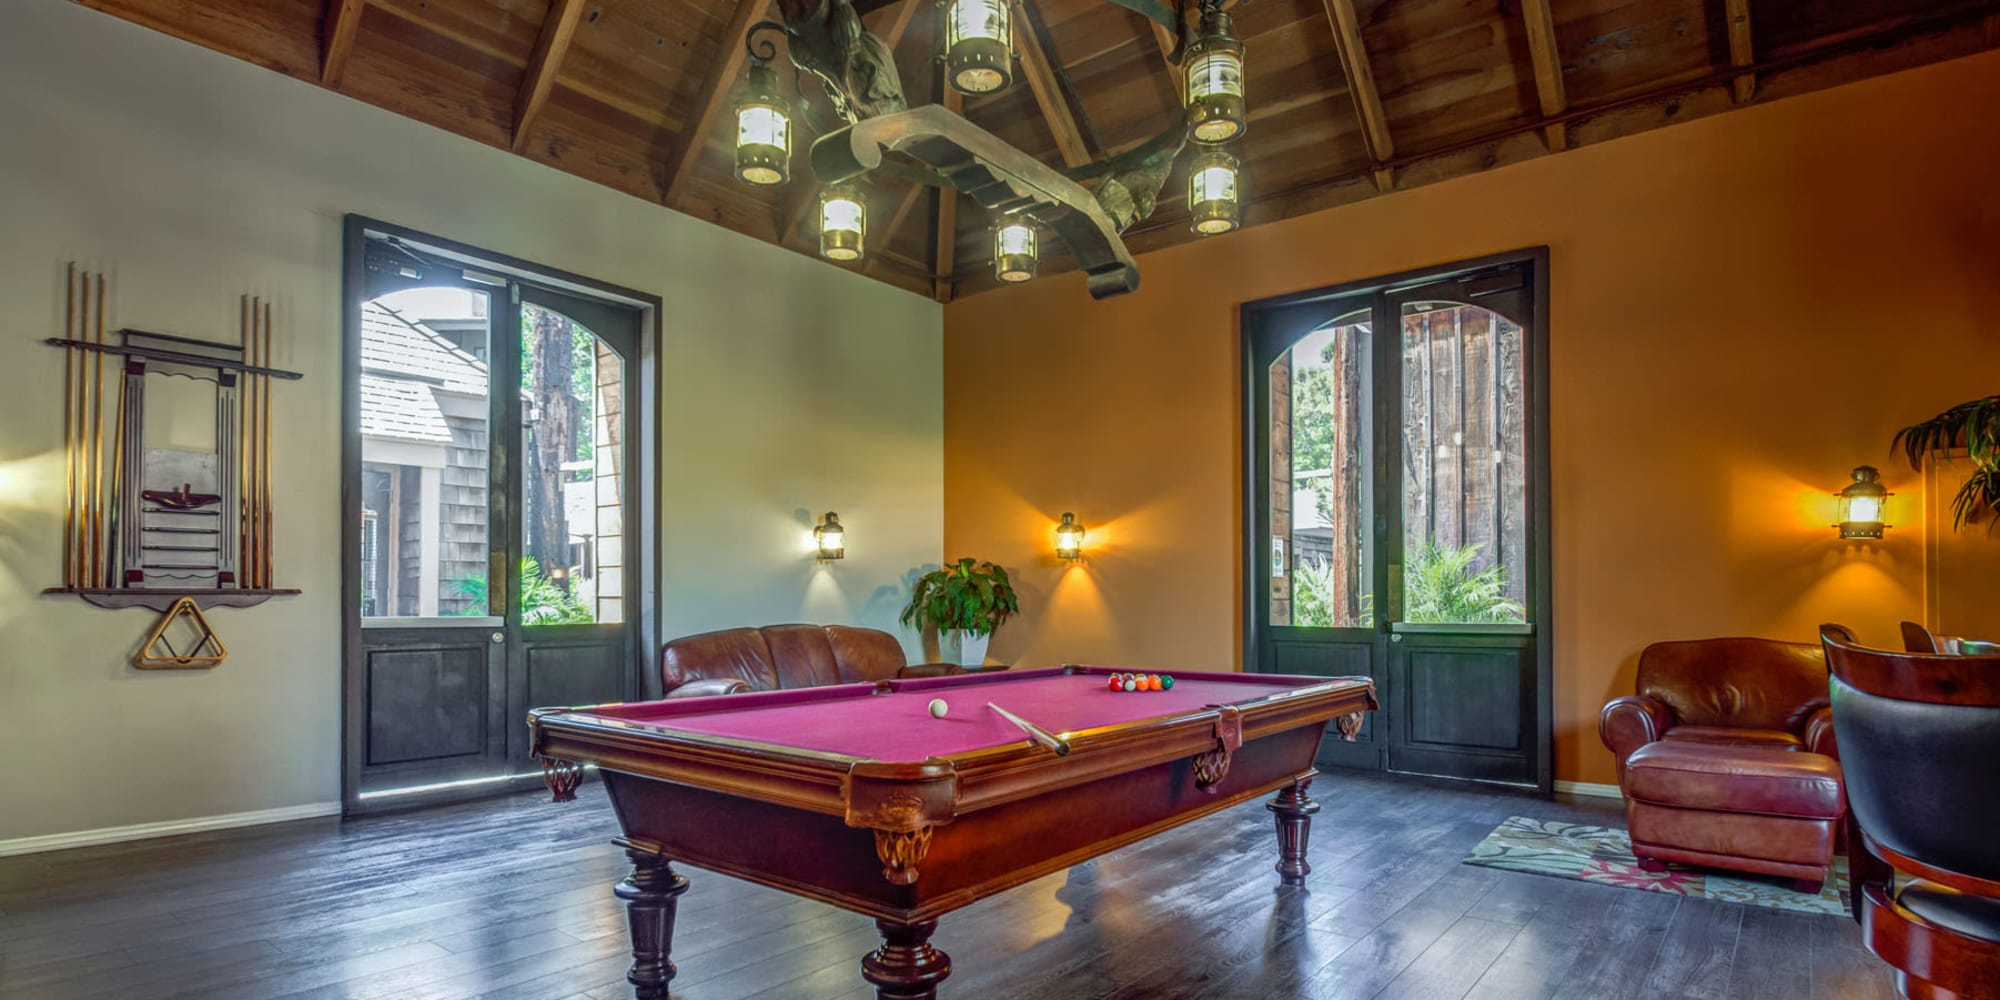 Billiards table and more in the clubhouse game room at Mariners Village in Marina del Rey, California